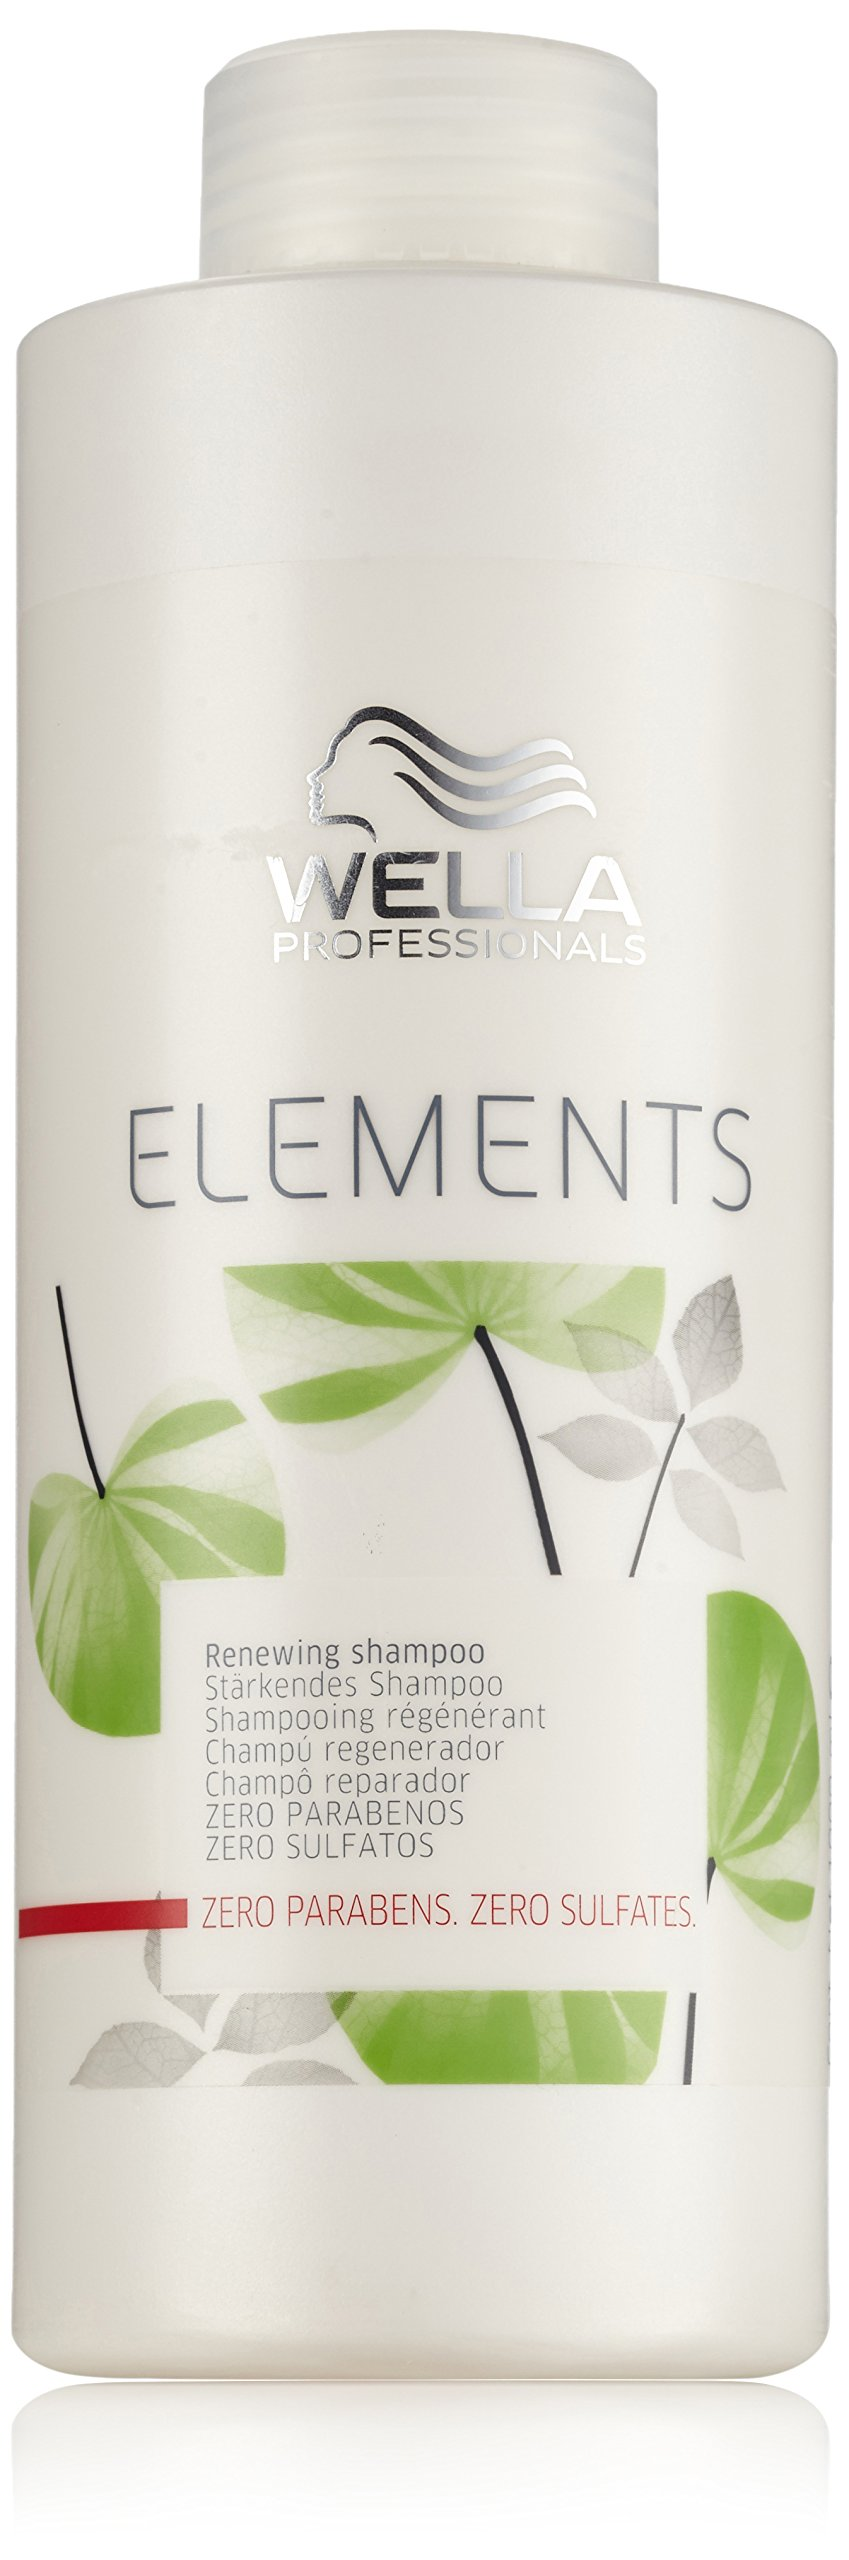 Wella Elements - Champú regenerator, 1000 ml product image